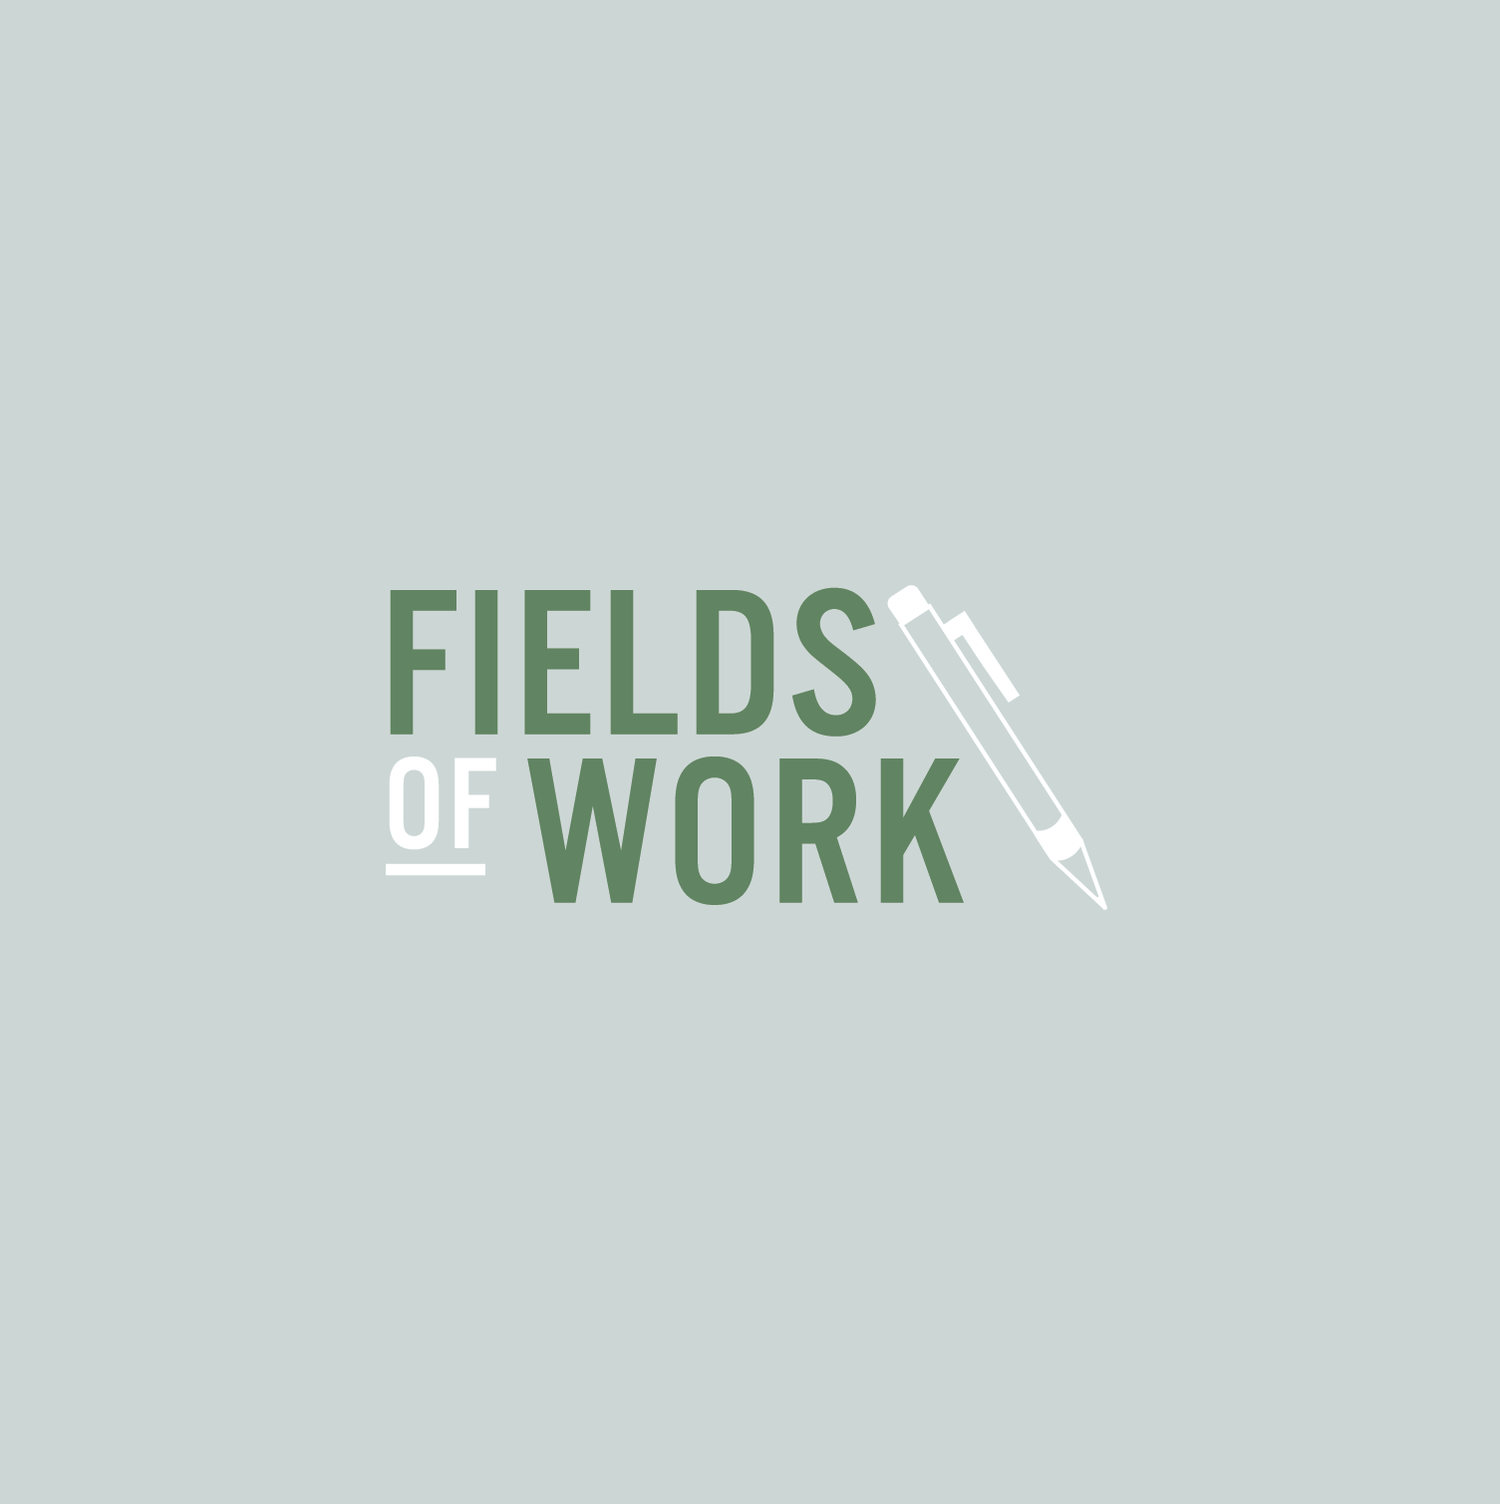 Fields of Work